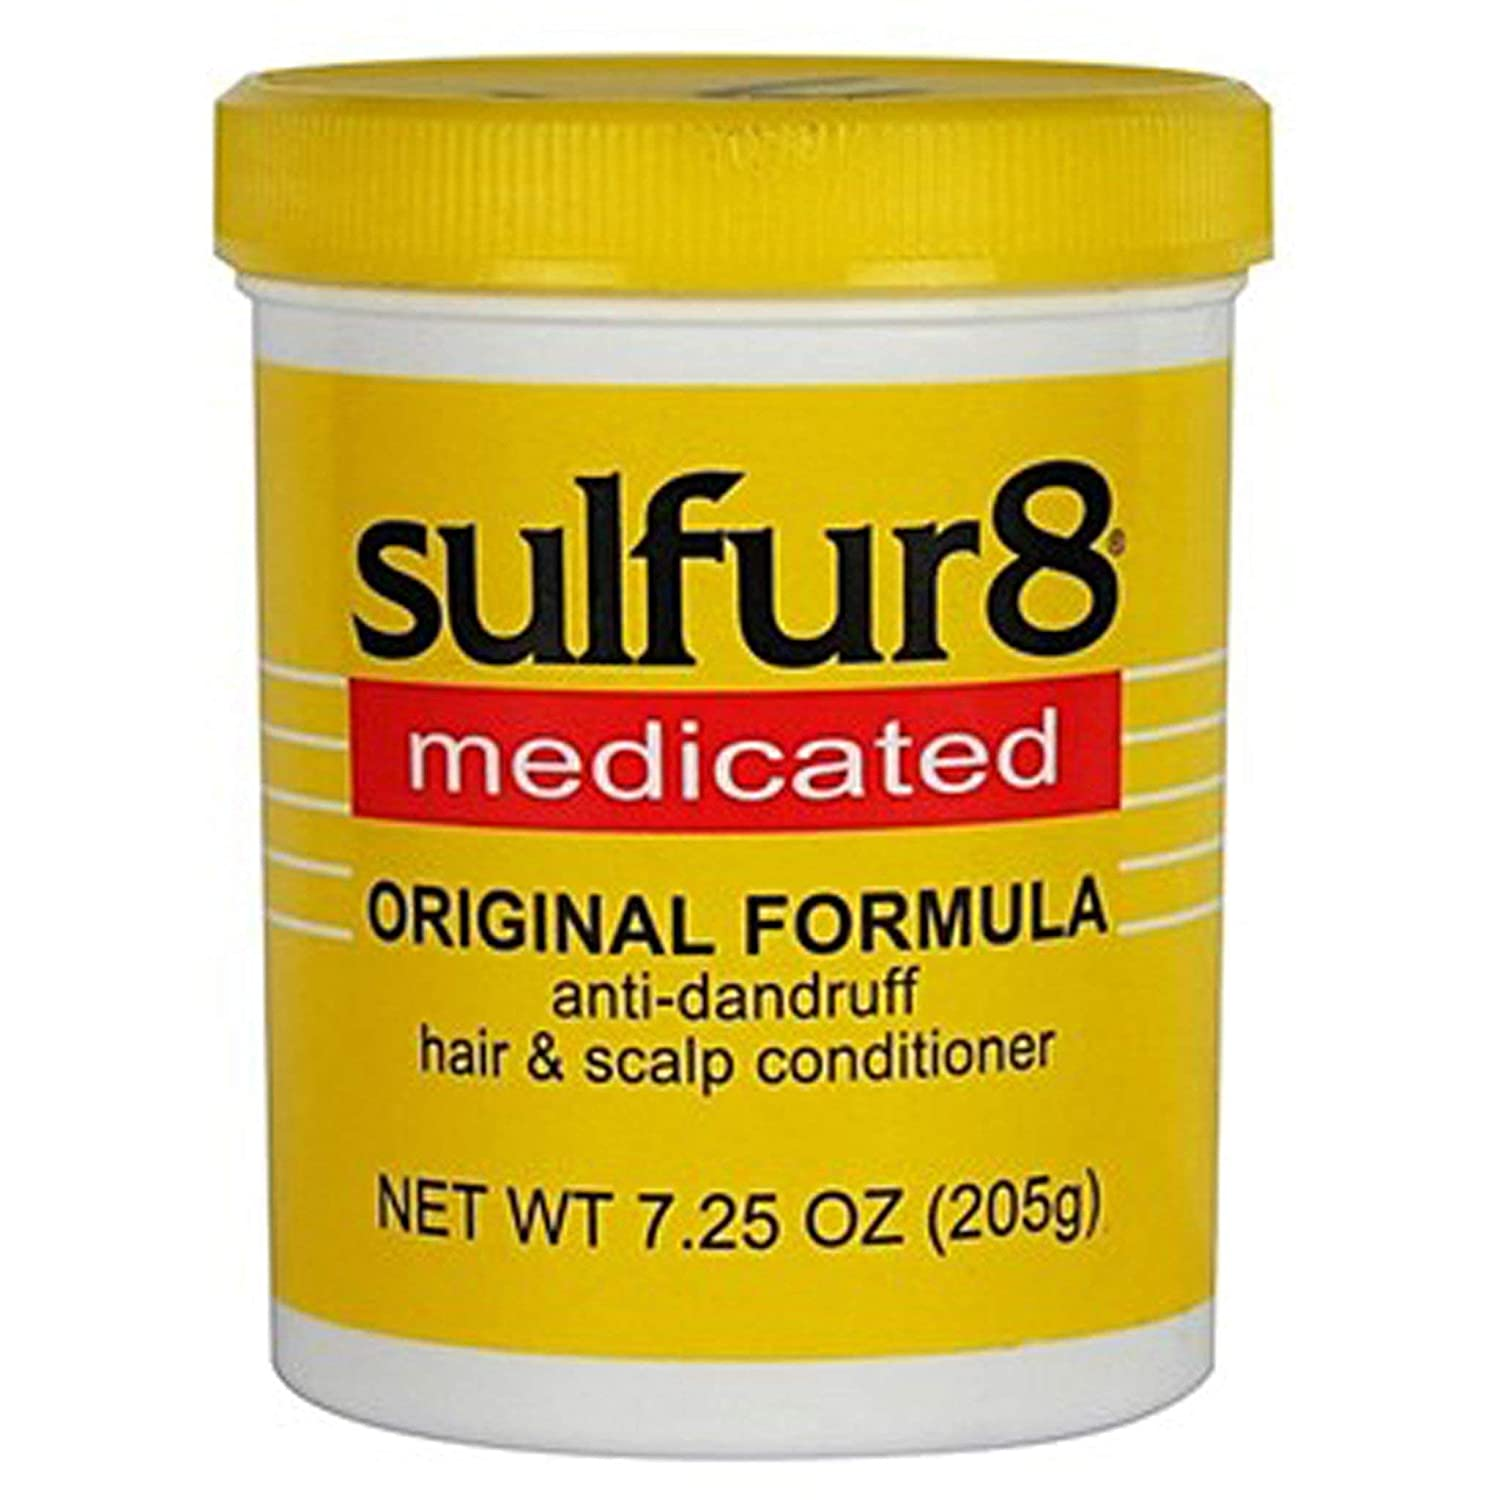 5 ☆ popular Sulfur8 Medicated 70% OFF Outlet Anti-Dandruff Hair and Origi Scalp Conditioner